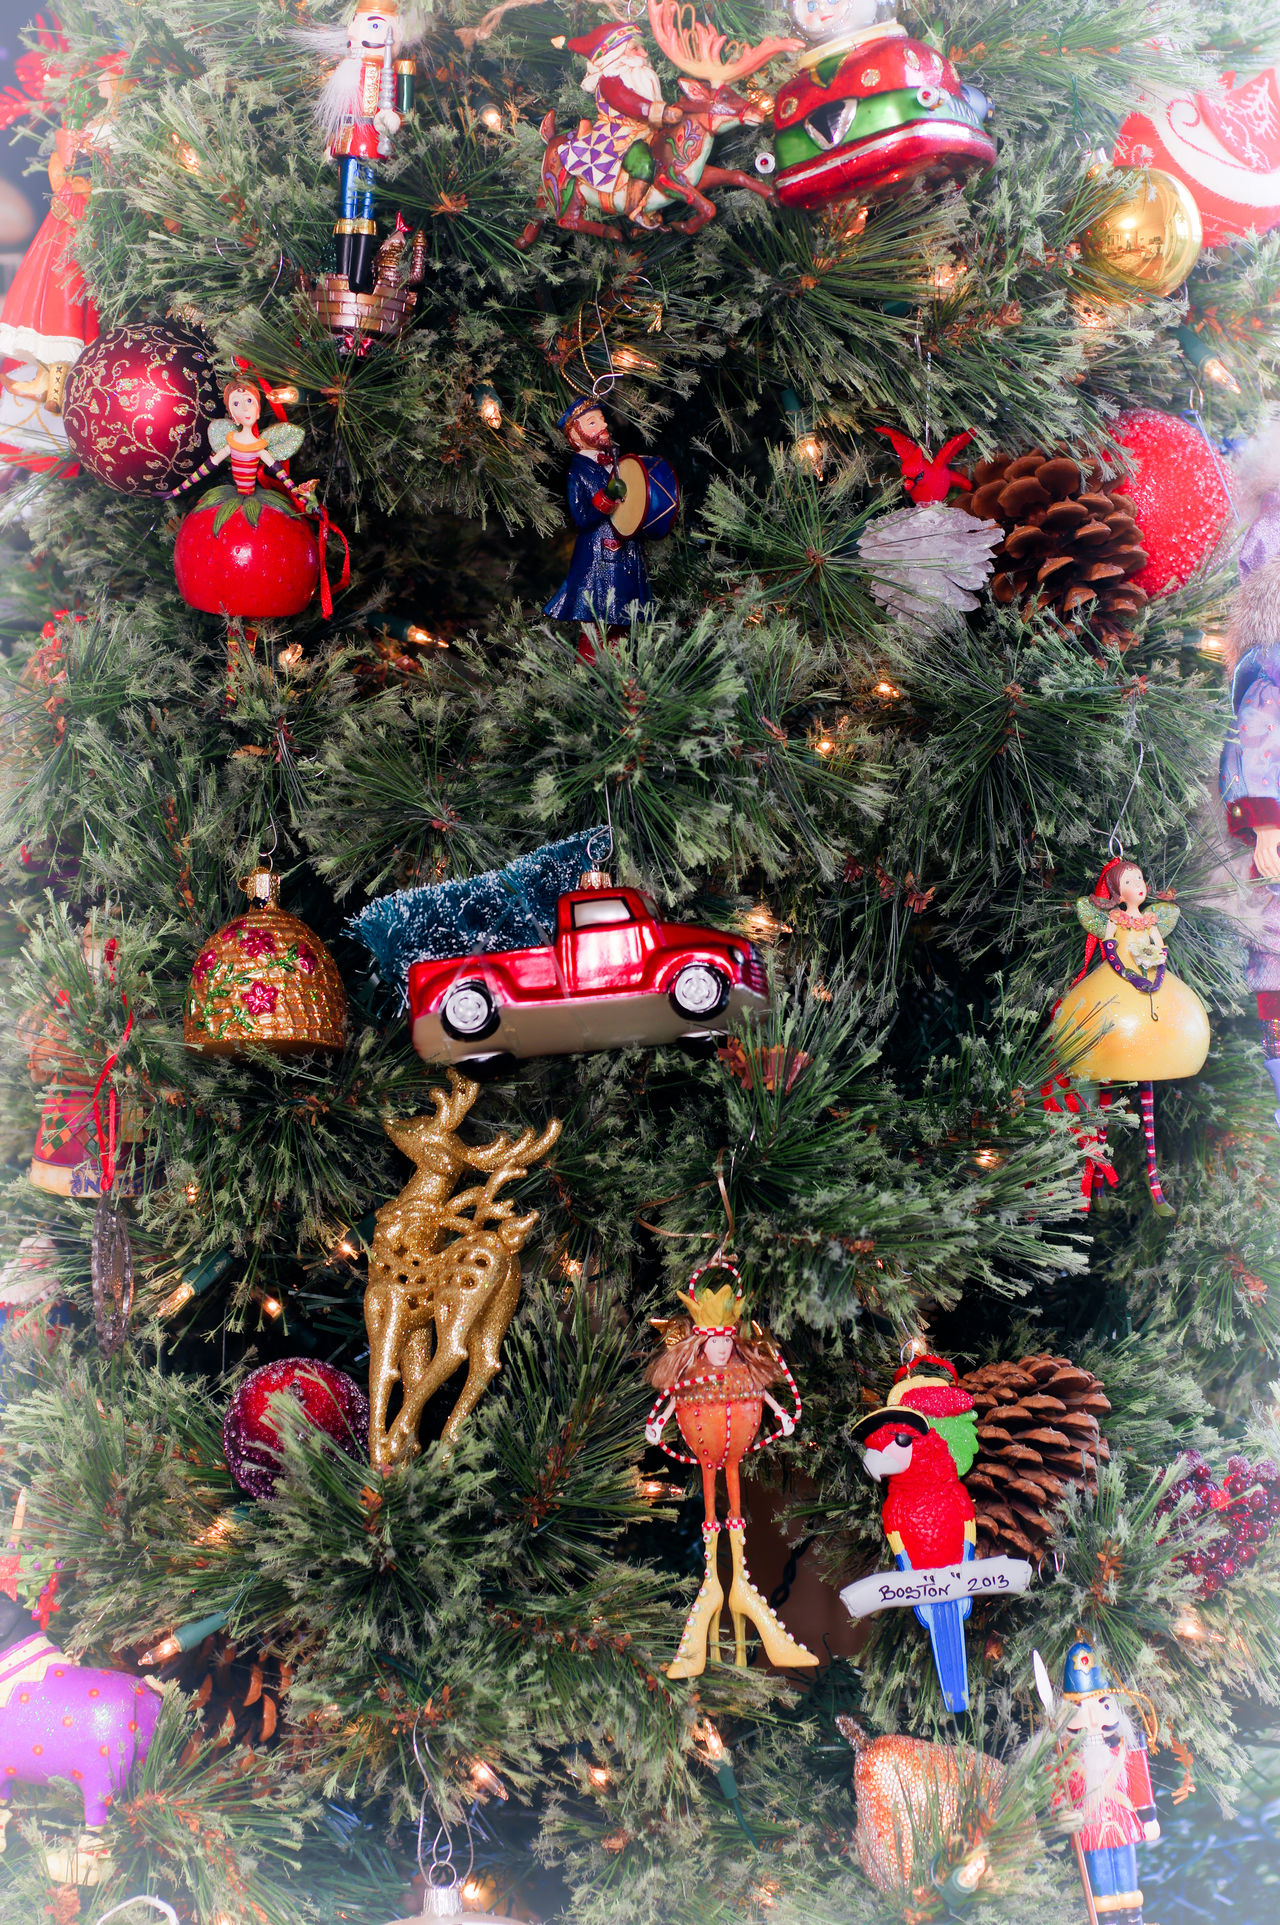 Celebration Christmas Christmas Bauble Christmas Decoration Christmas Lights Christmas Ornament Christmas Present Christmas Stocking Christmas Tree Hanging Holiday - Event Illuminated Night No People Outdoors Text Tradition Tree Vacations